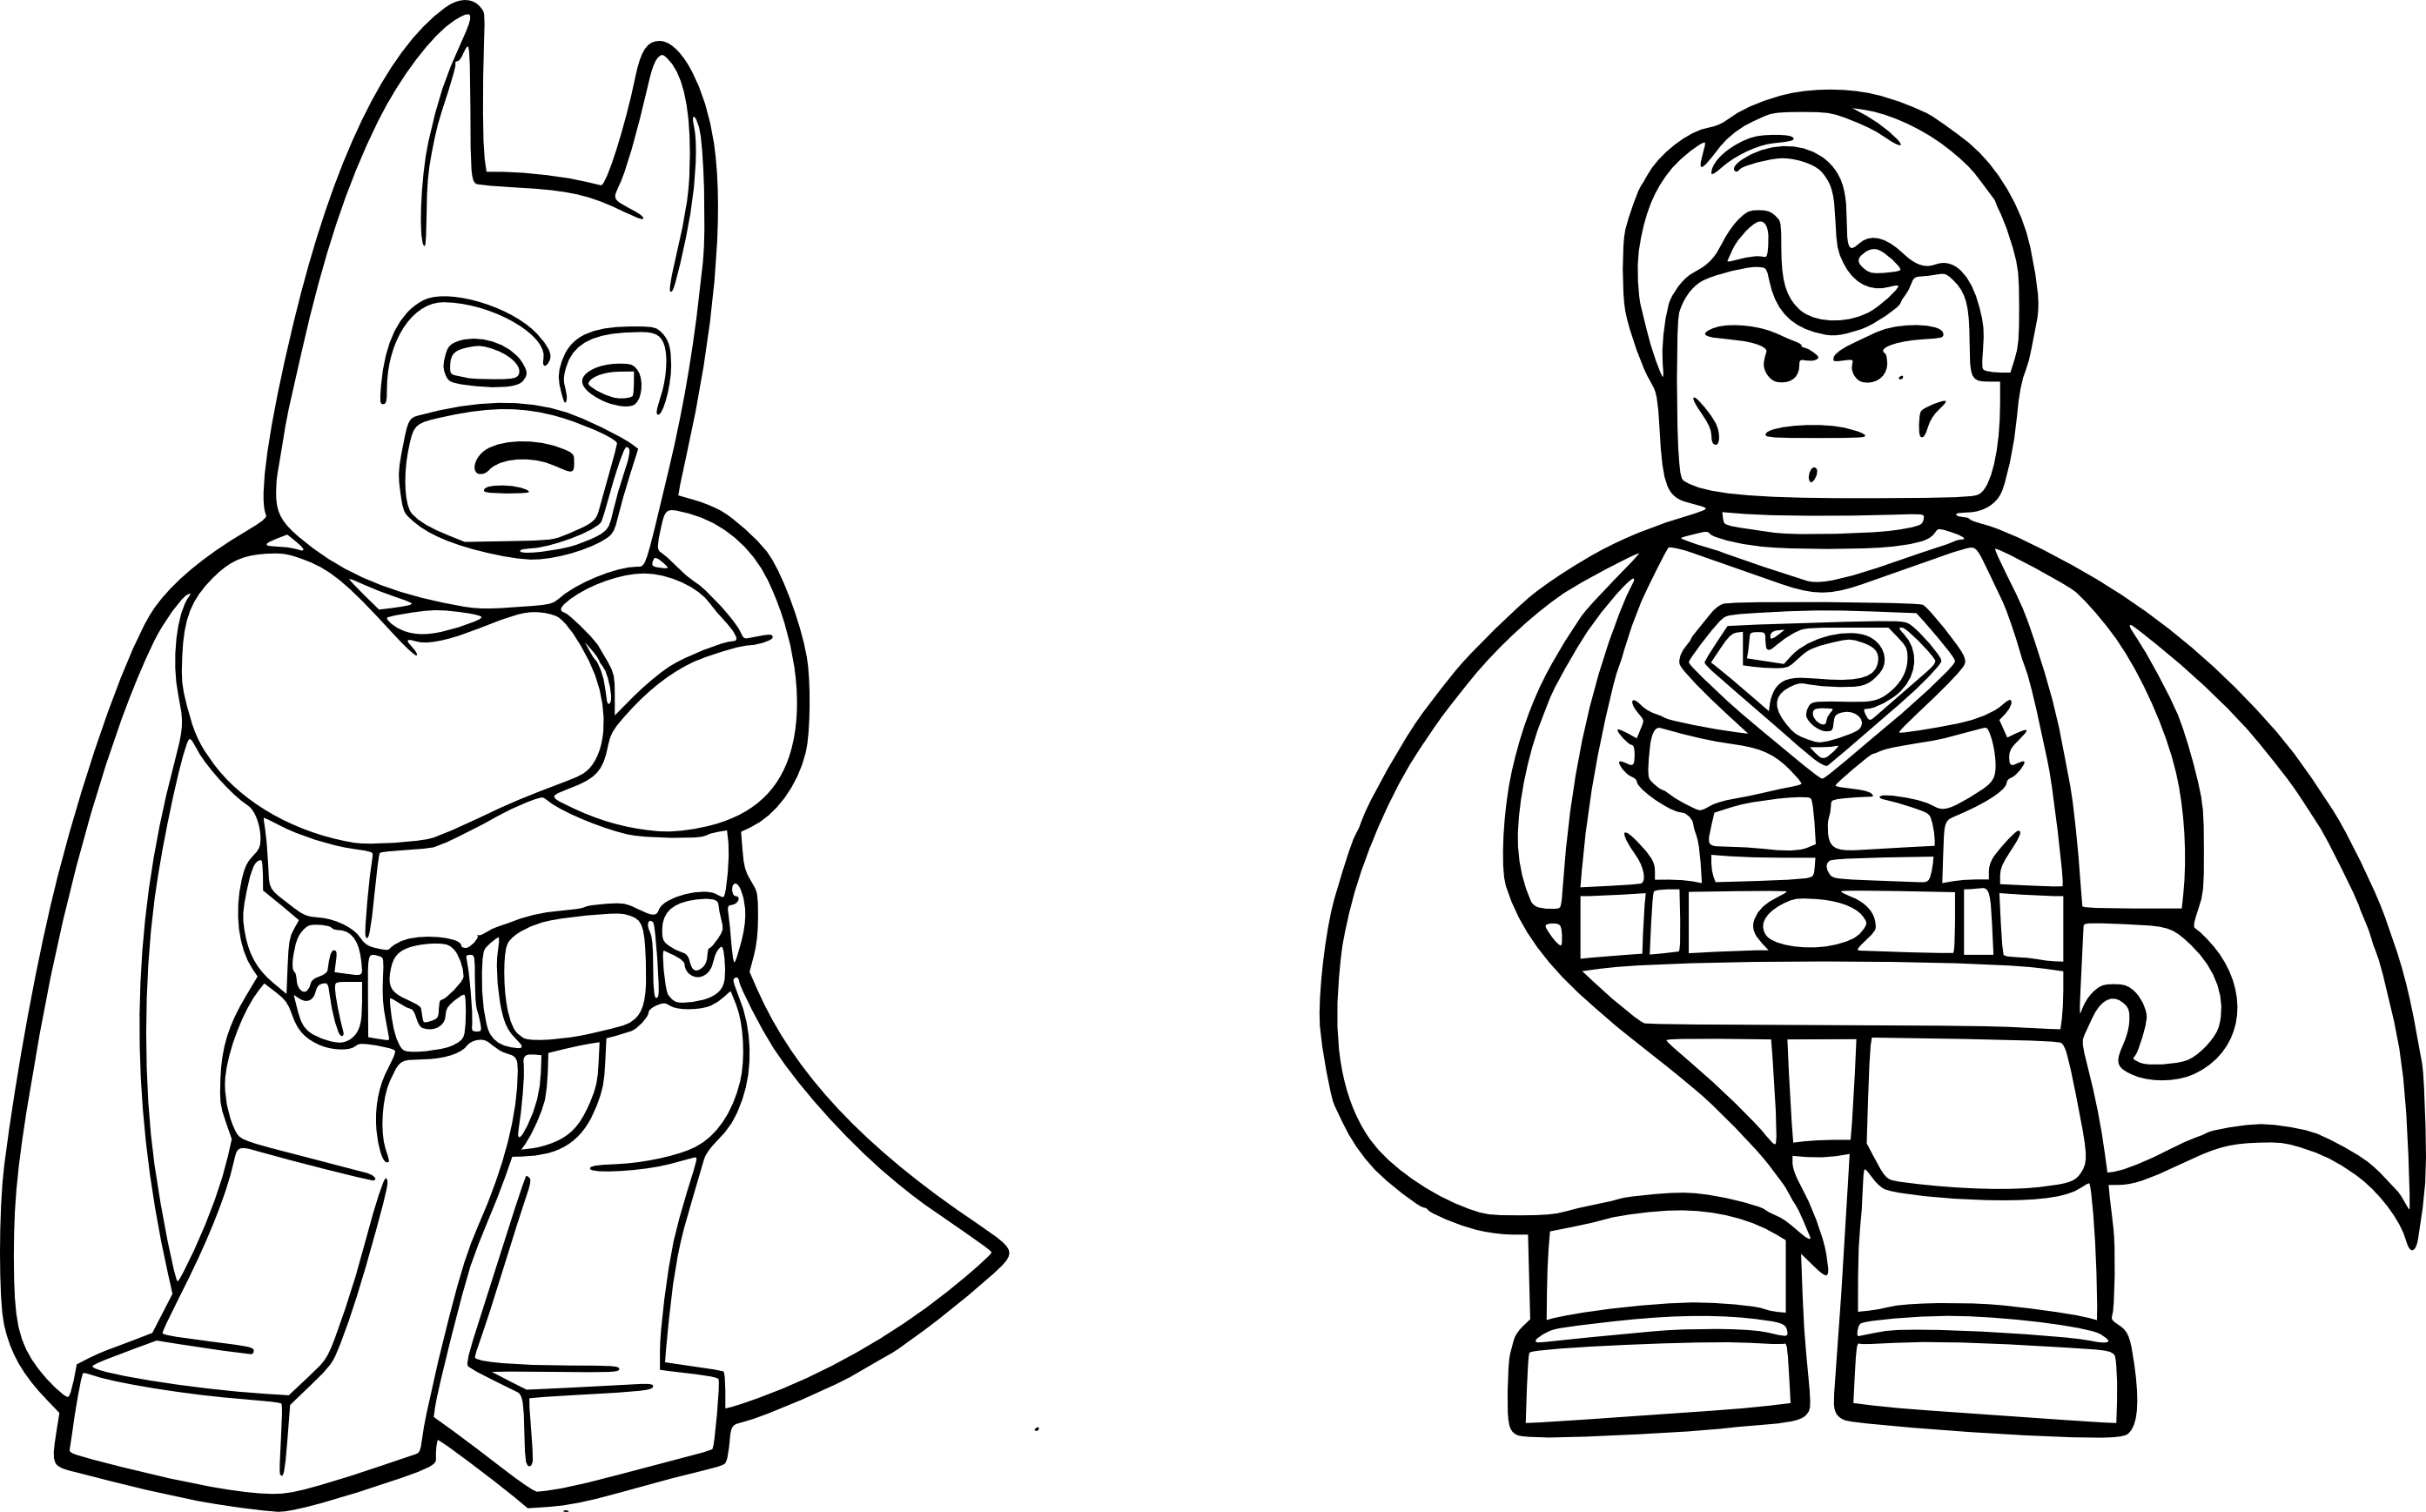 Coloriage batman superman lego imprimer - Superman et batman dessin anime ...